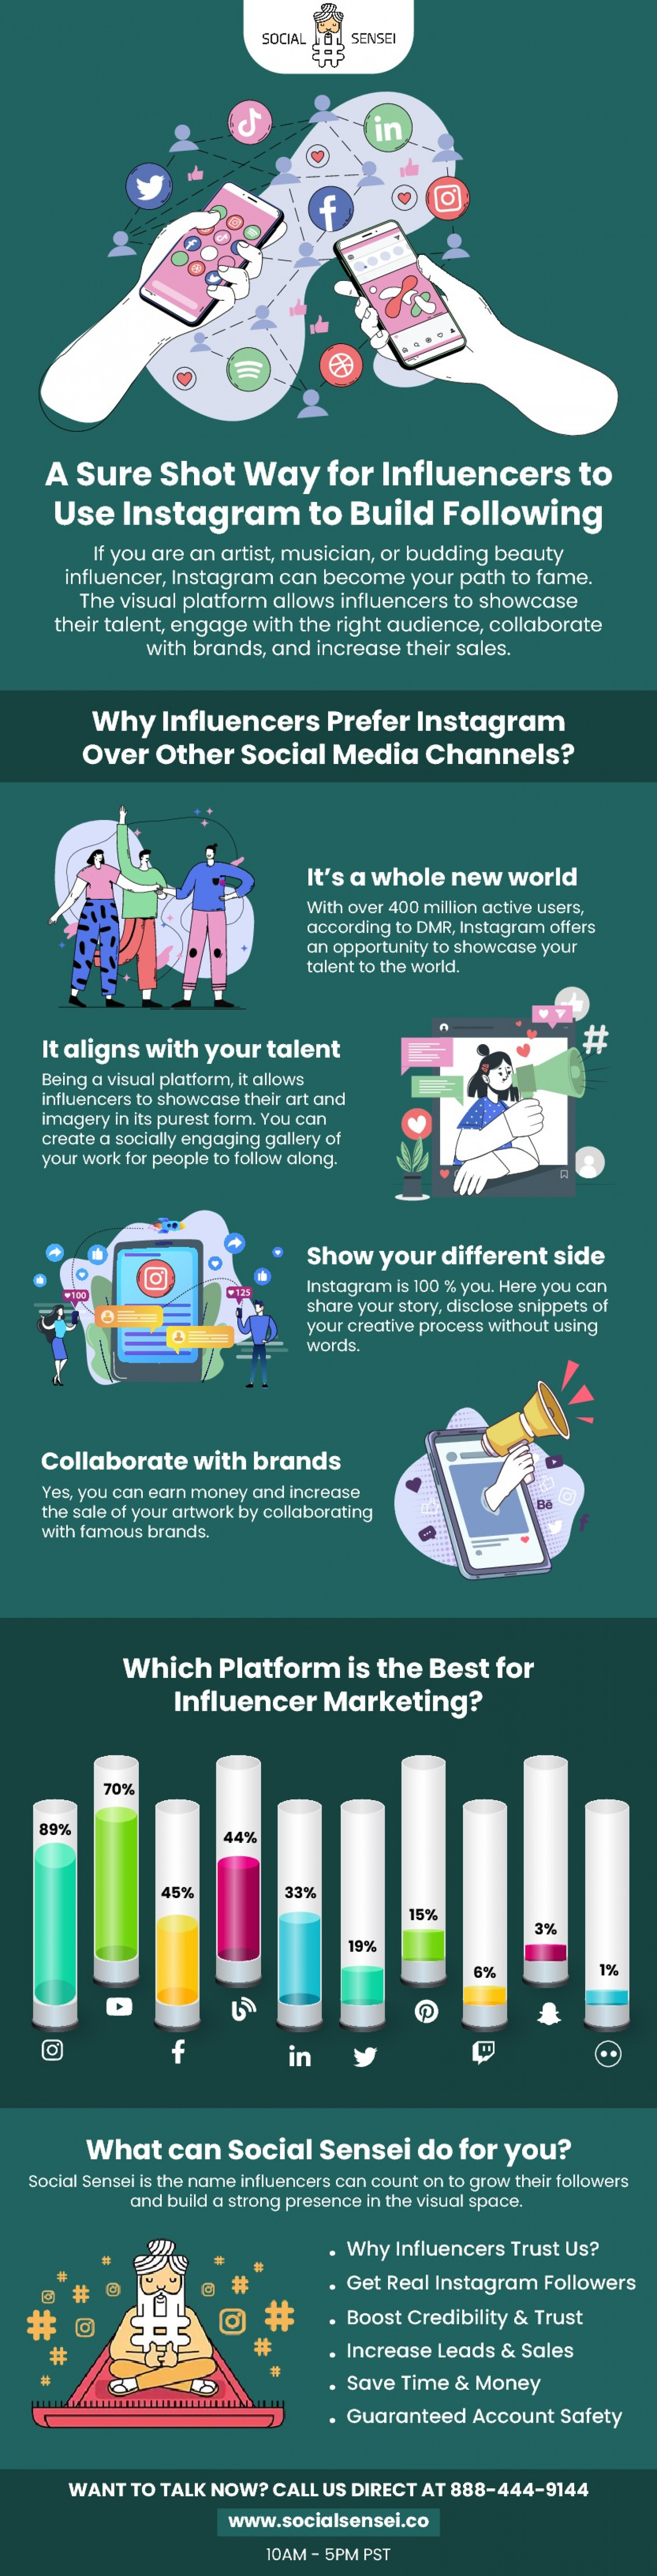 A Sure Shot Way for Influencers to Use Instagram to Build Following Infographic